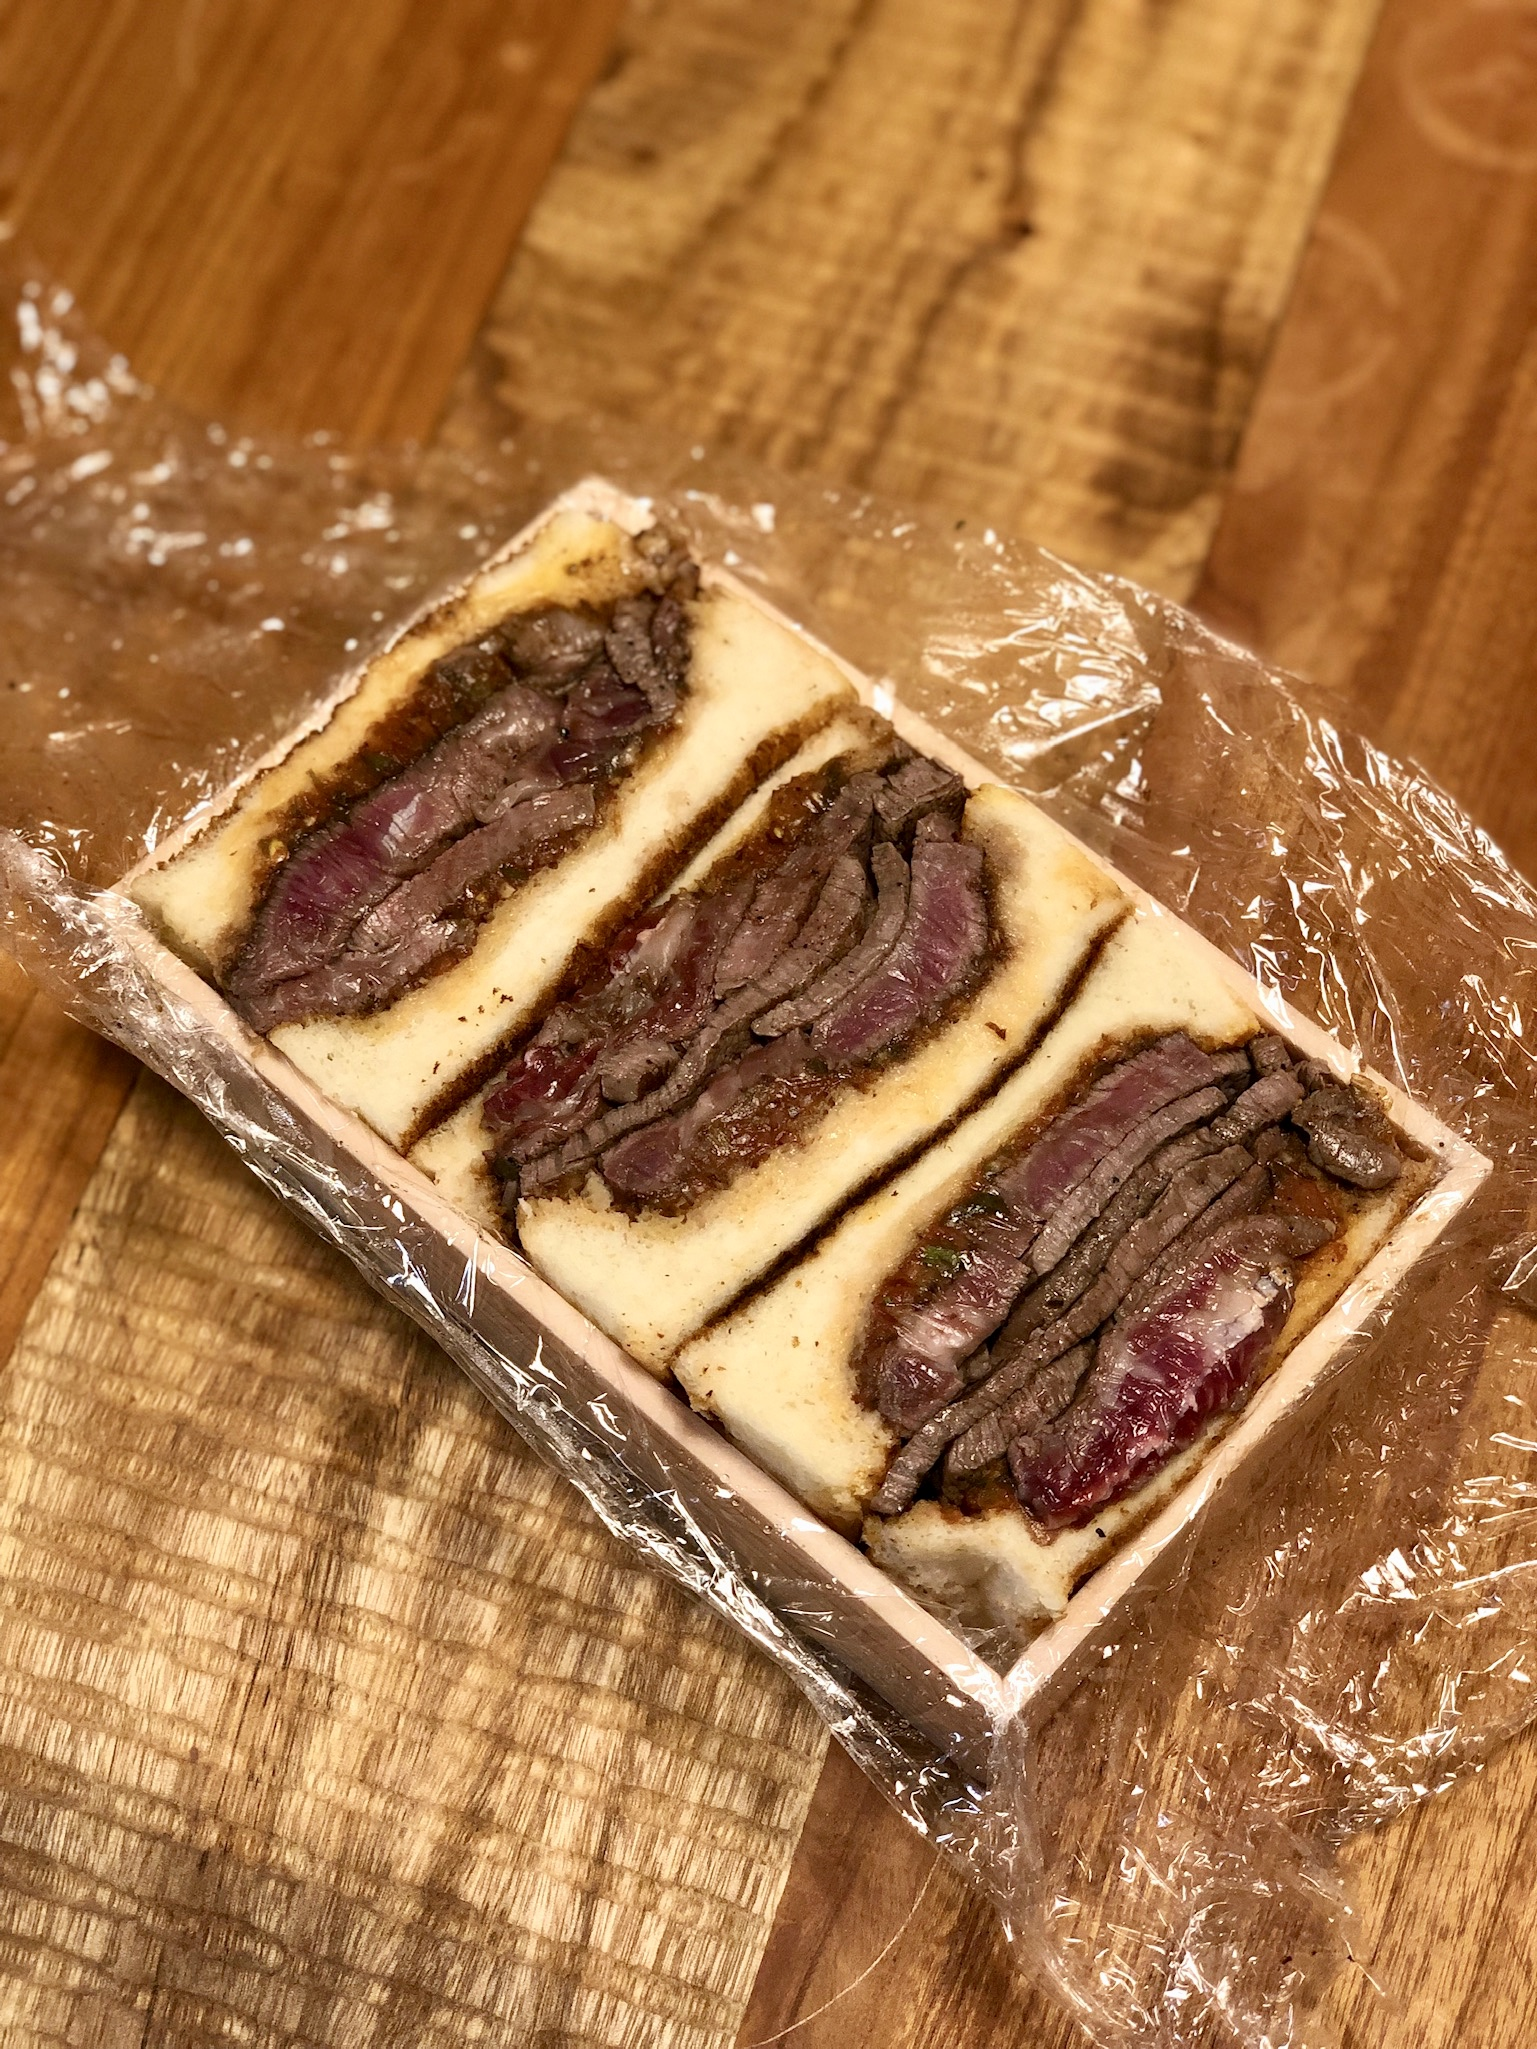 The famous take-out wagyu steak sandwich from Shima